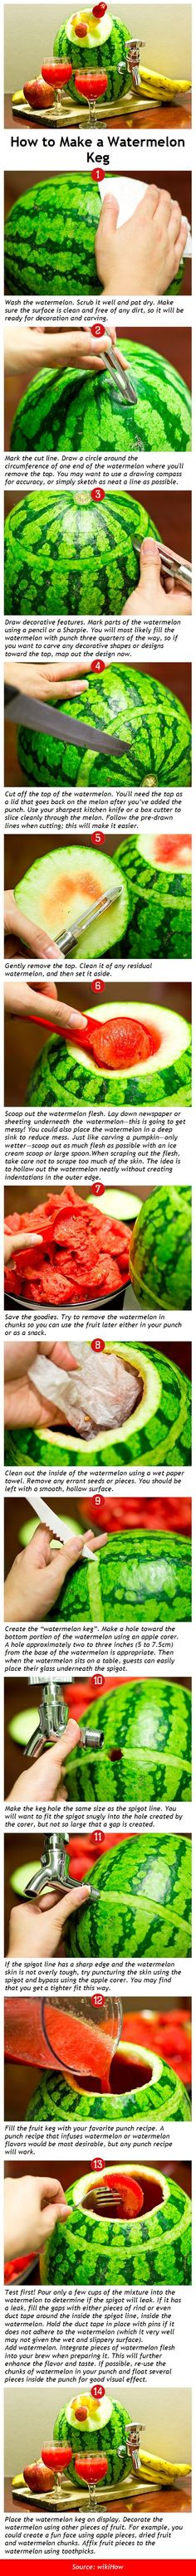 How to Make a Watermelon Keg/Barrell  fill with favorite fruit punch for birthday or holiday